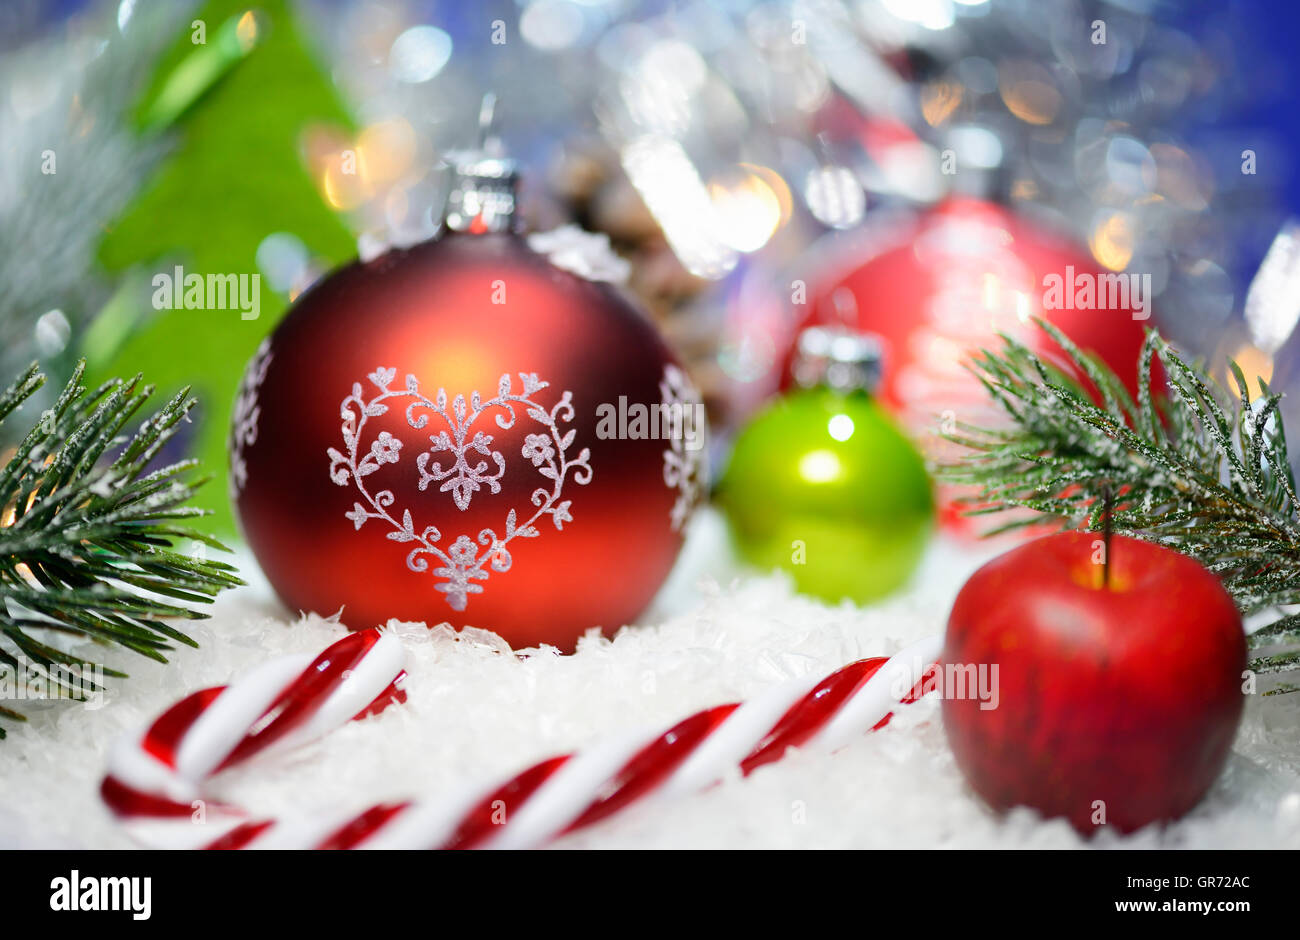 Christmas Bauble And Candy Cane, Christmas Time - Stock Image